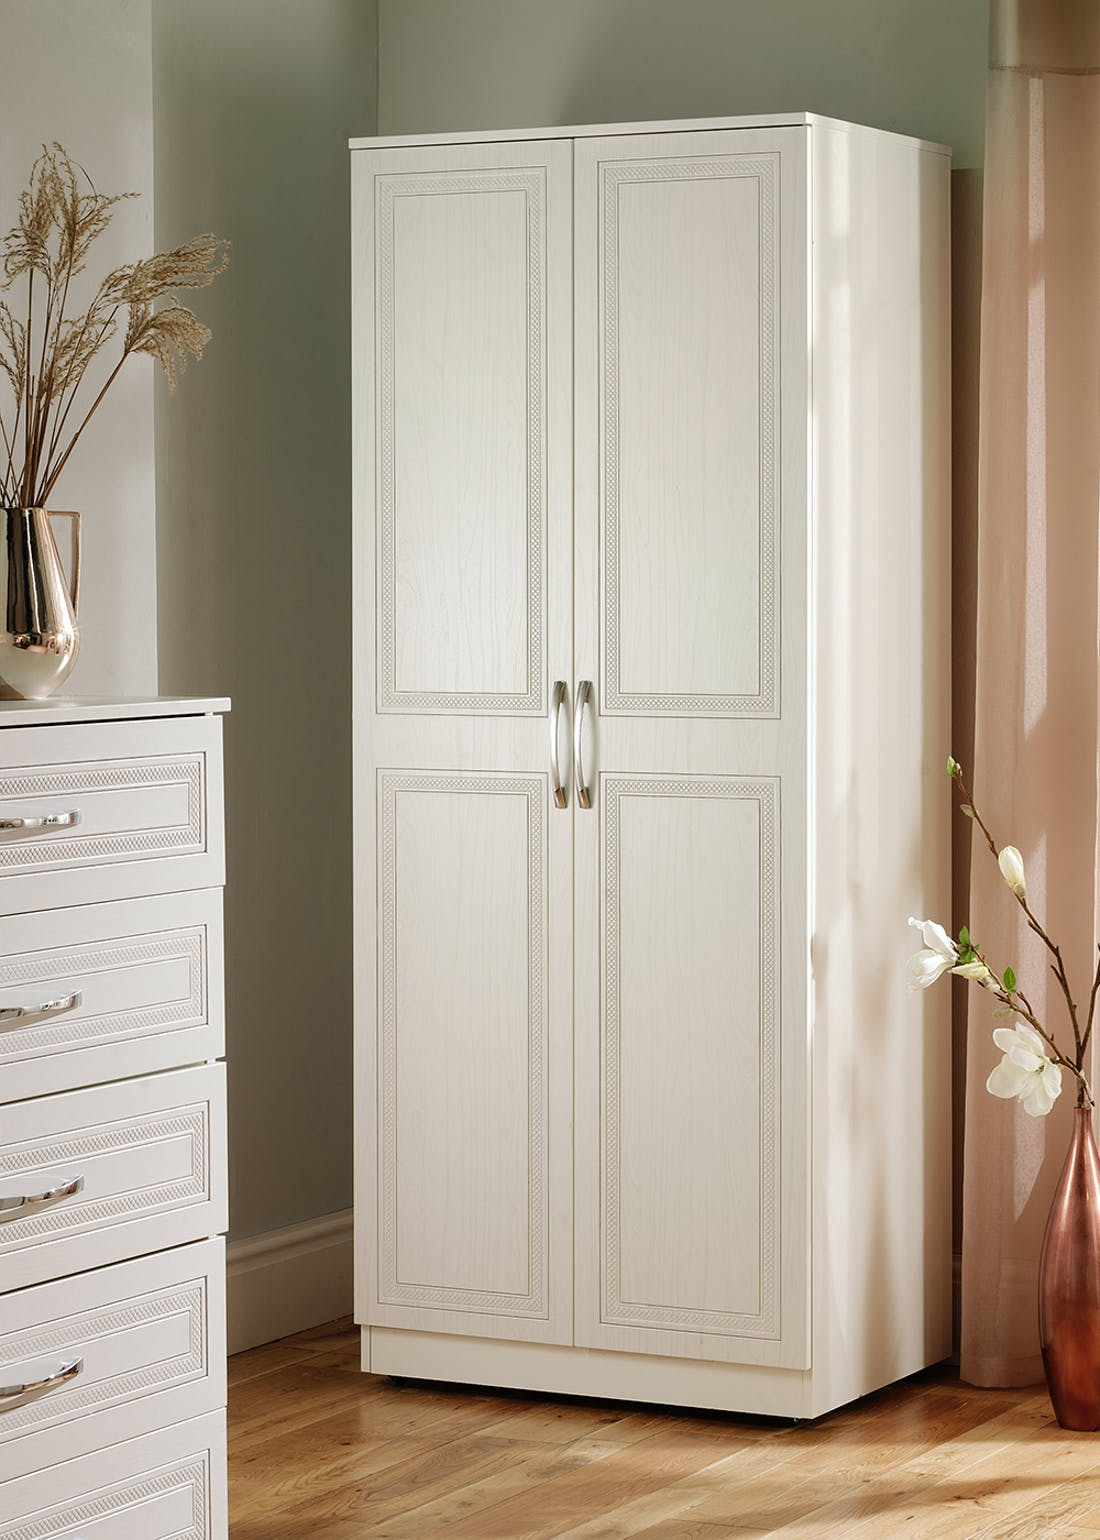 Swift Ashford 4 Piece Bedroom Furniture Collection